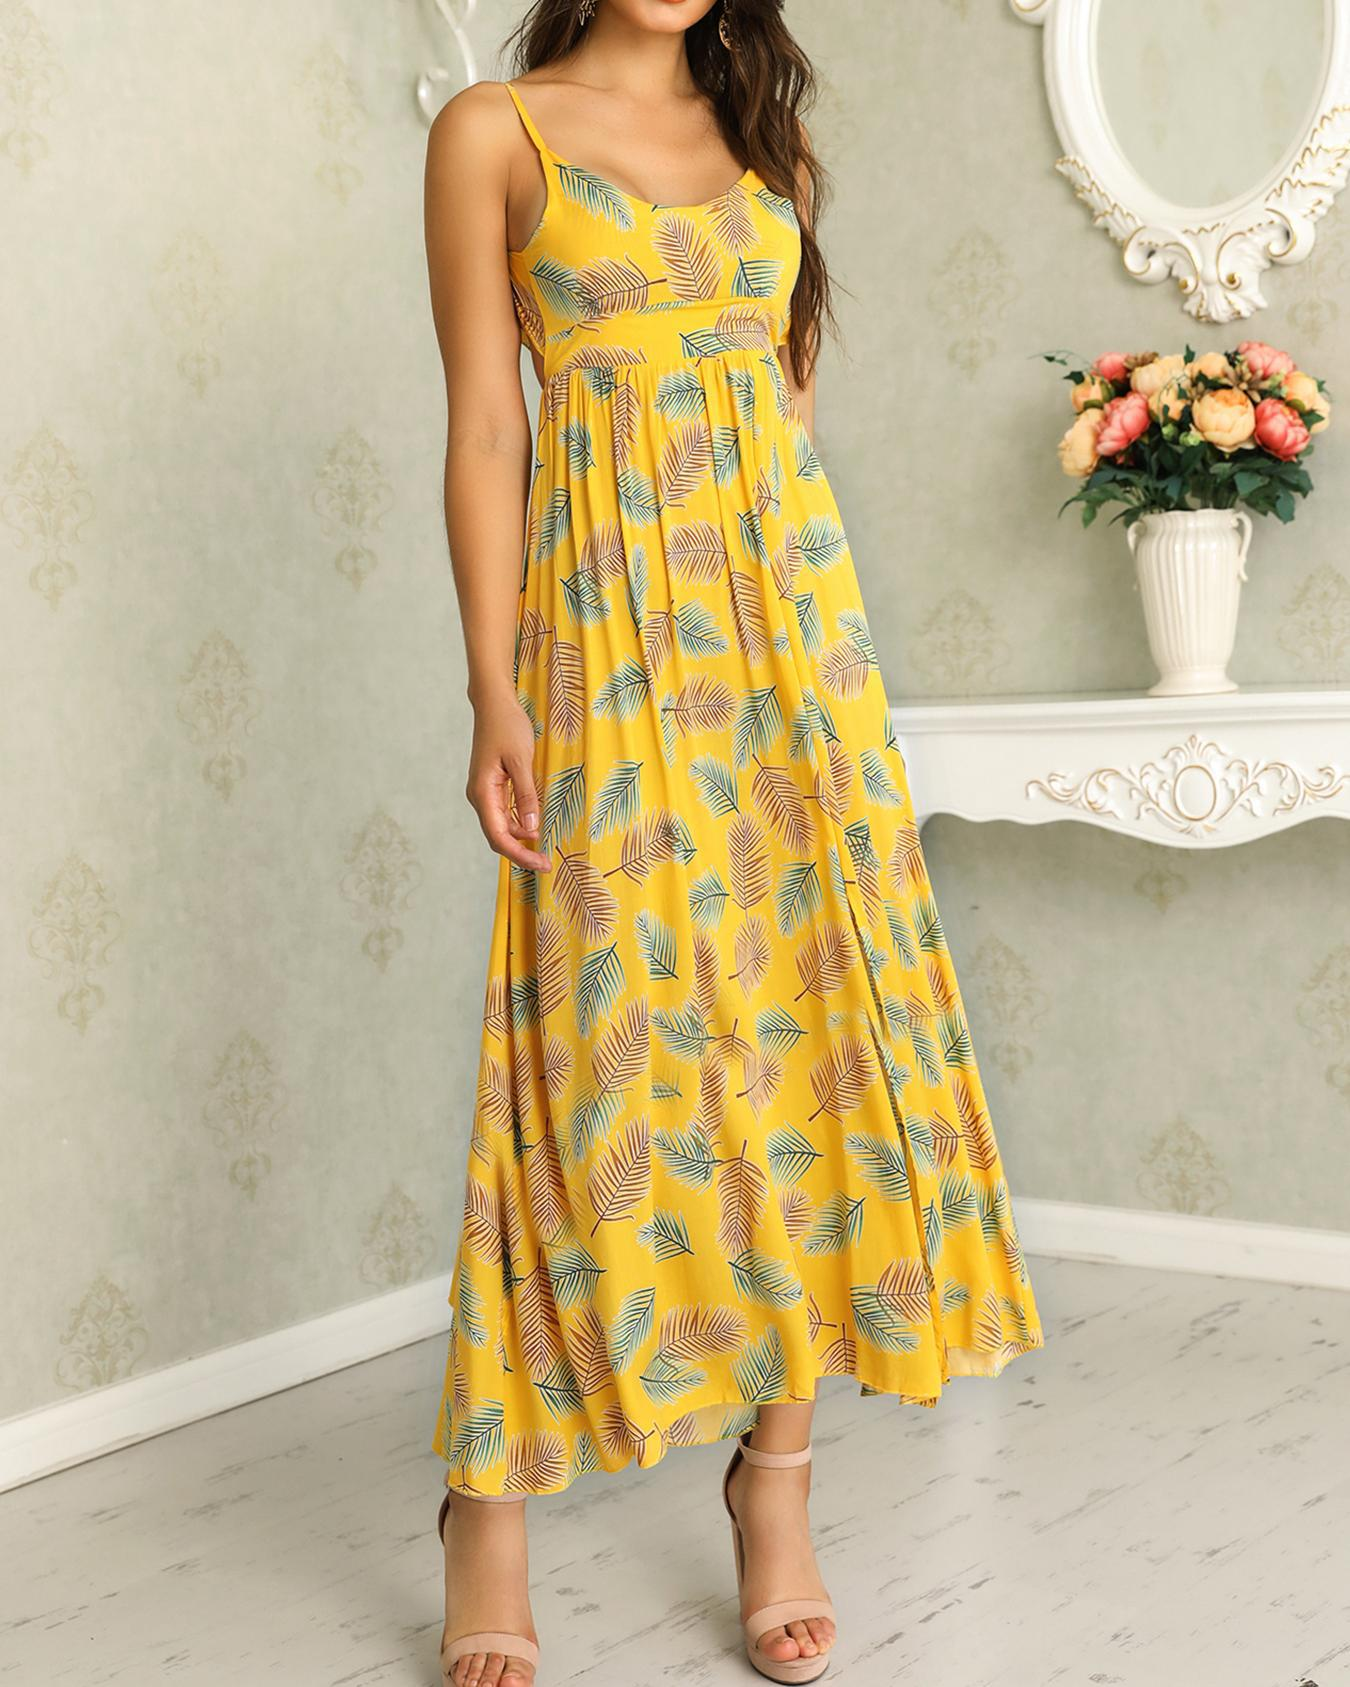 chicme / Palm Print Knotted Open Back Casual Dress